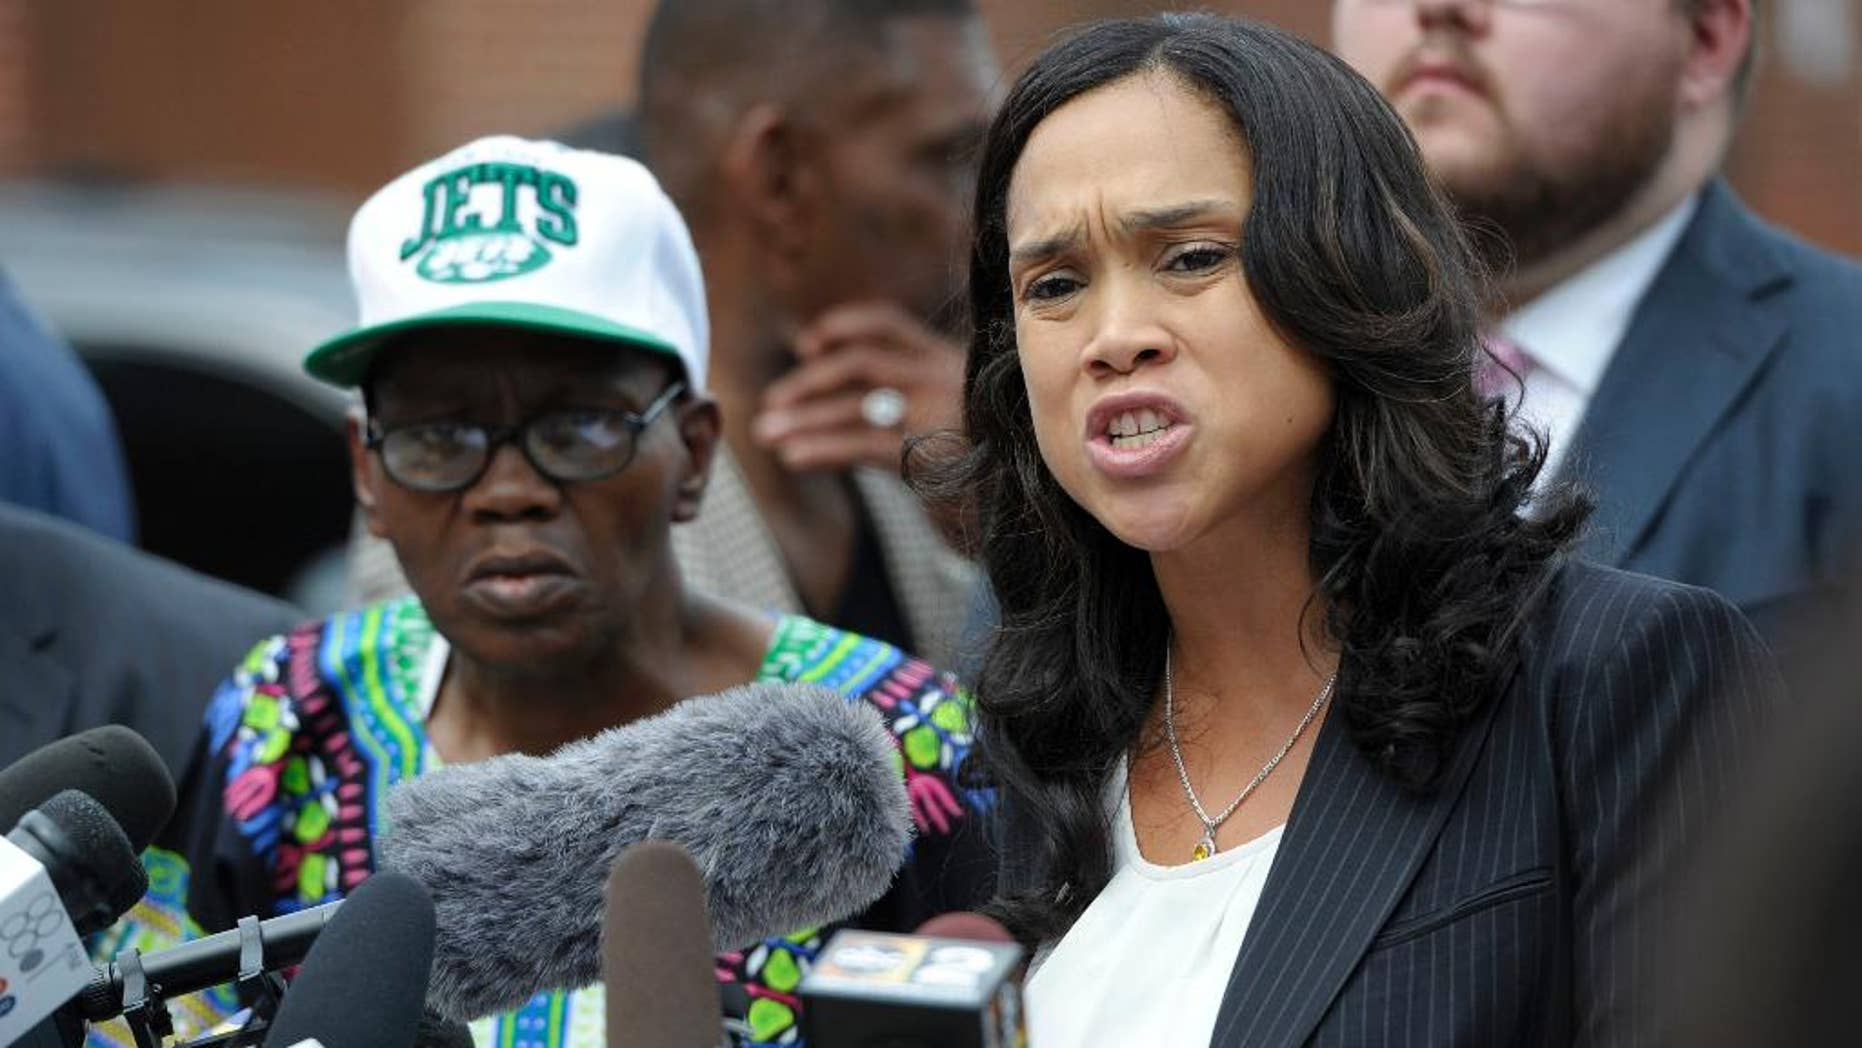 Baltimore State's Attorney Marilyn Mosby, right, holds a news conference near the site where Freddie Gray was arrested after her office dropped the remaining charges against three Baltimore police officers awaiting trial in Gray's death, in Baltimore, Wednesday, July 27, 2016.